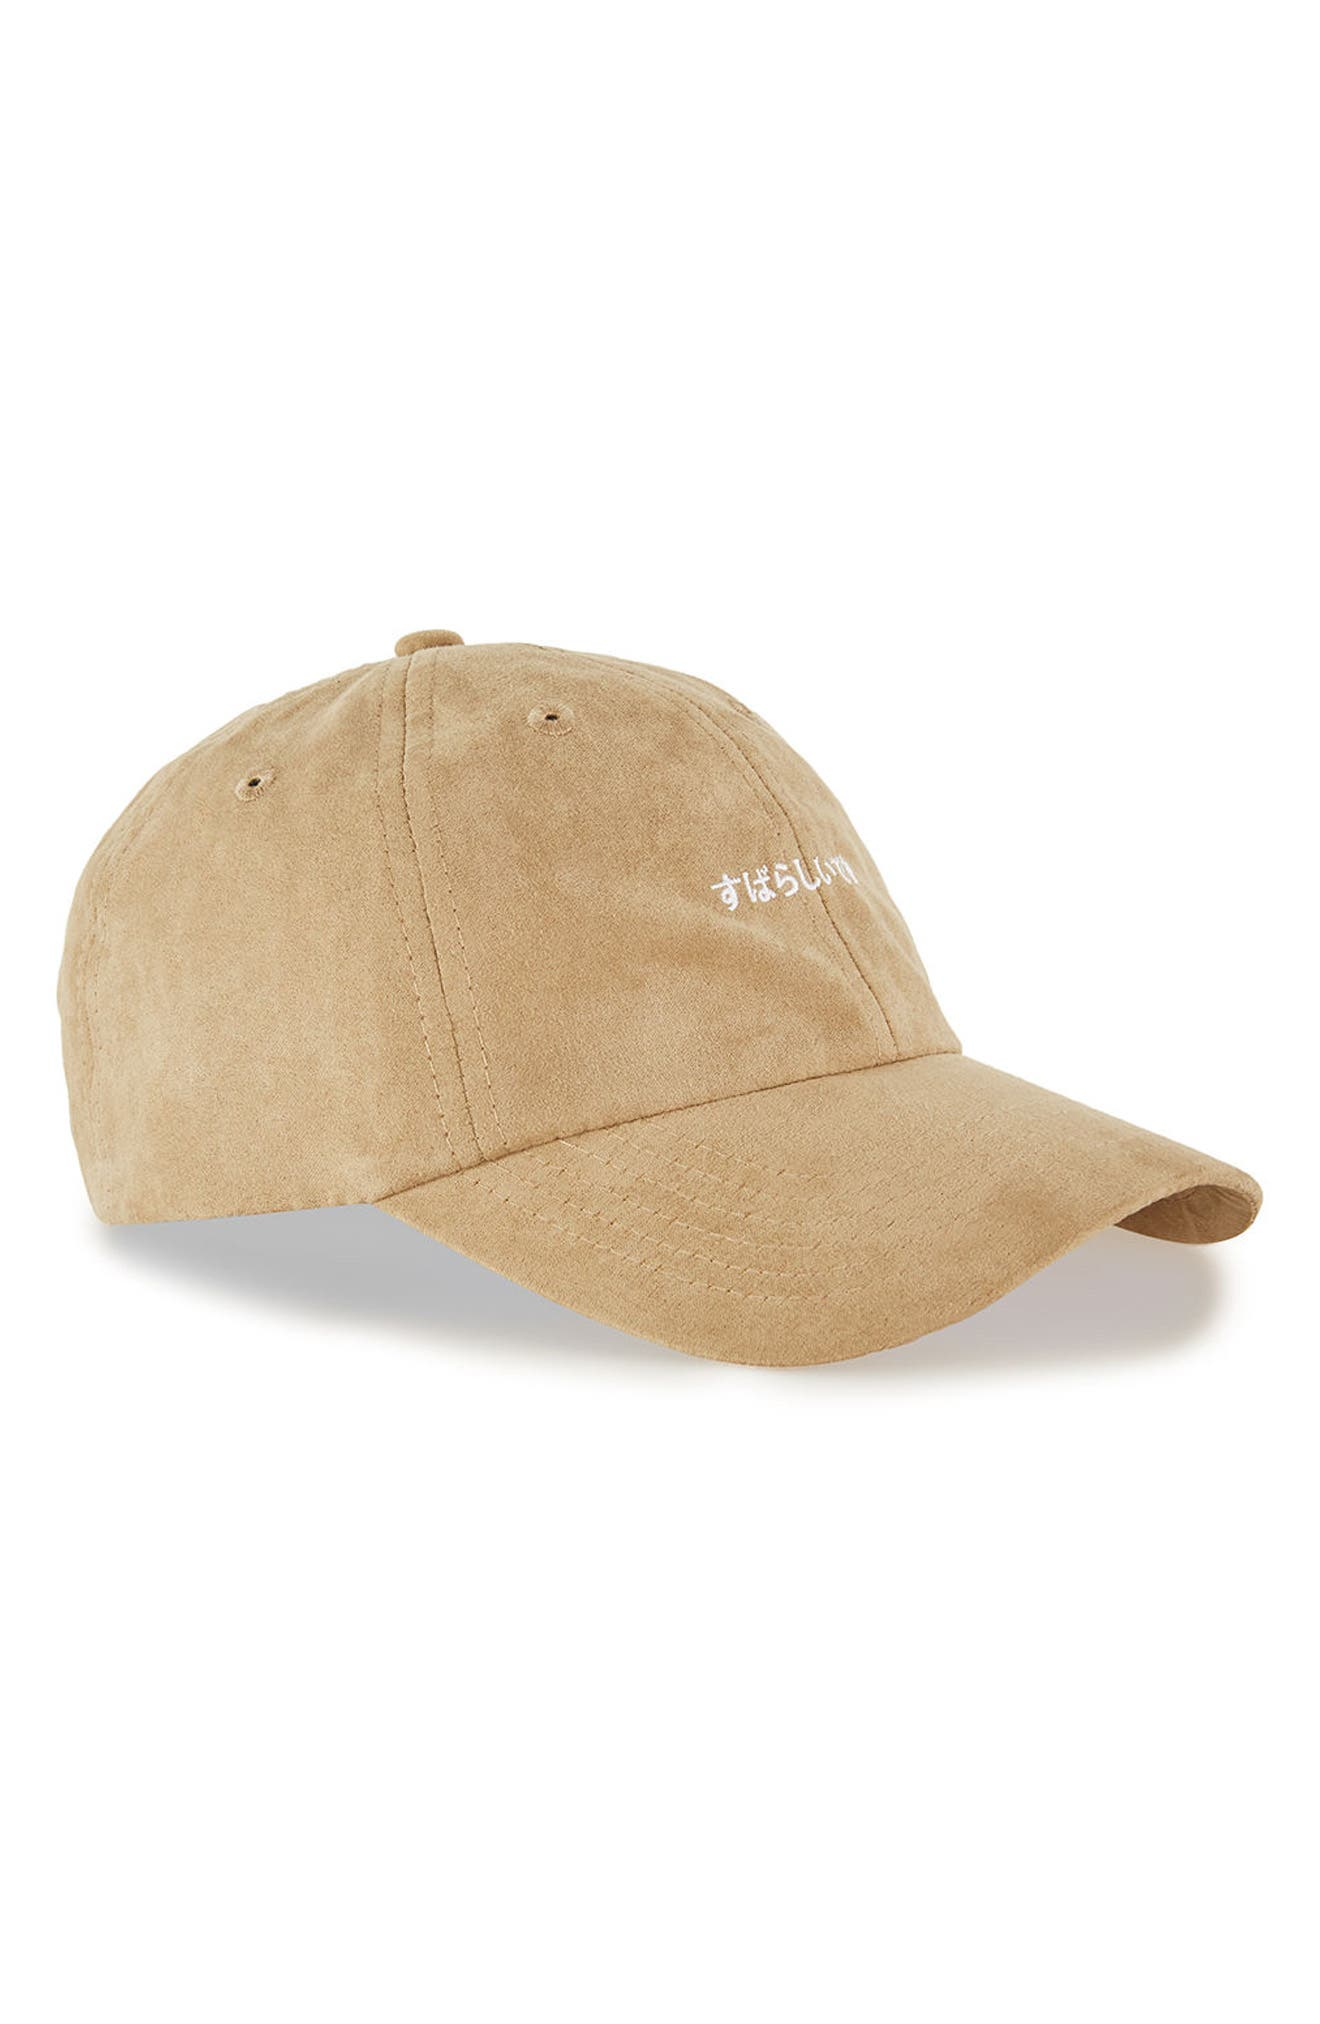 Topman Japanese Subarashi Wonderful Ball Cap